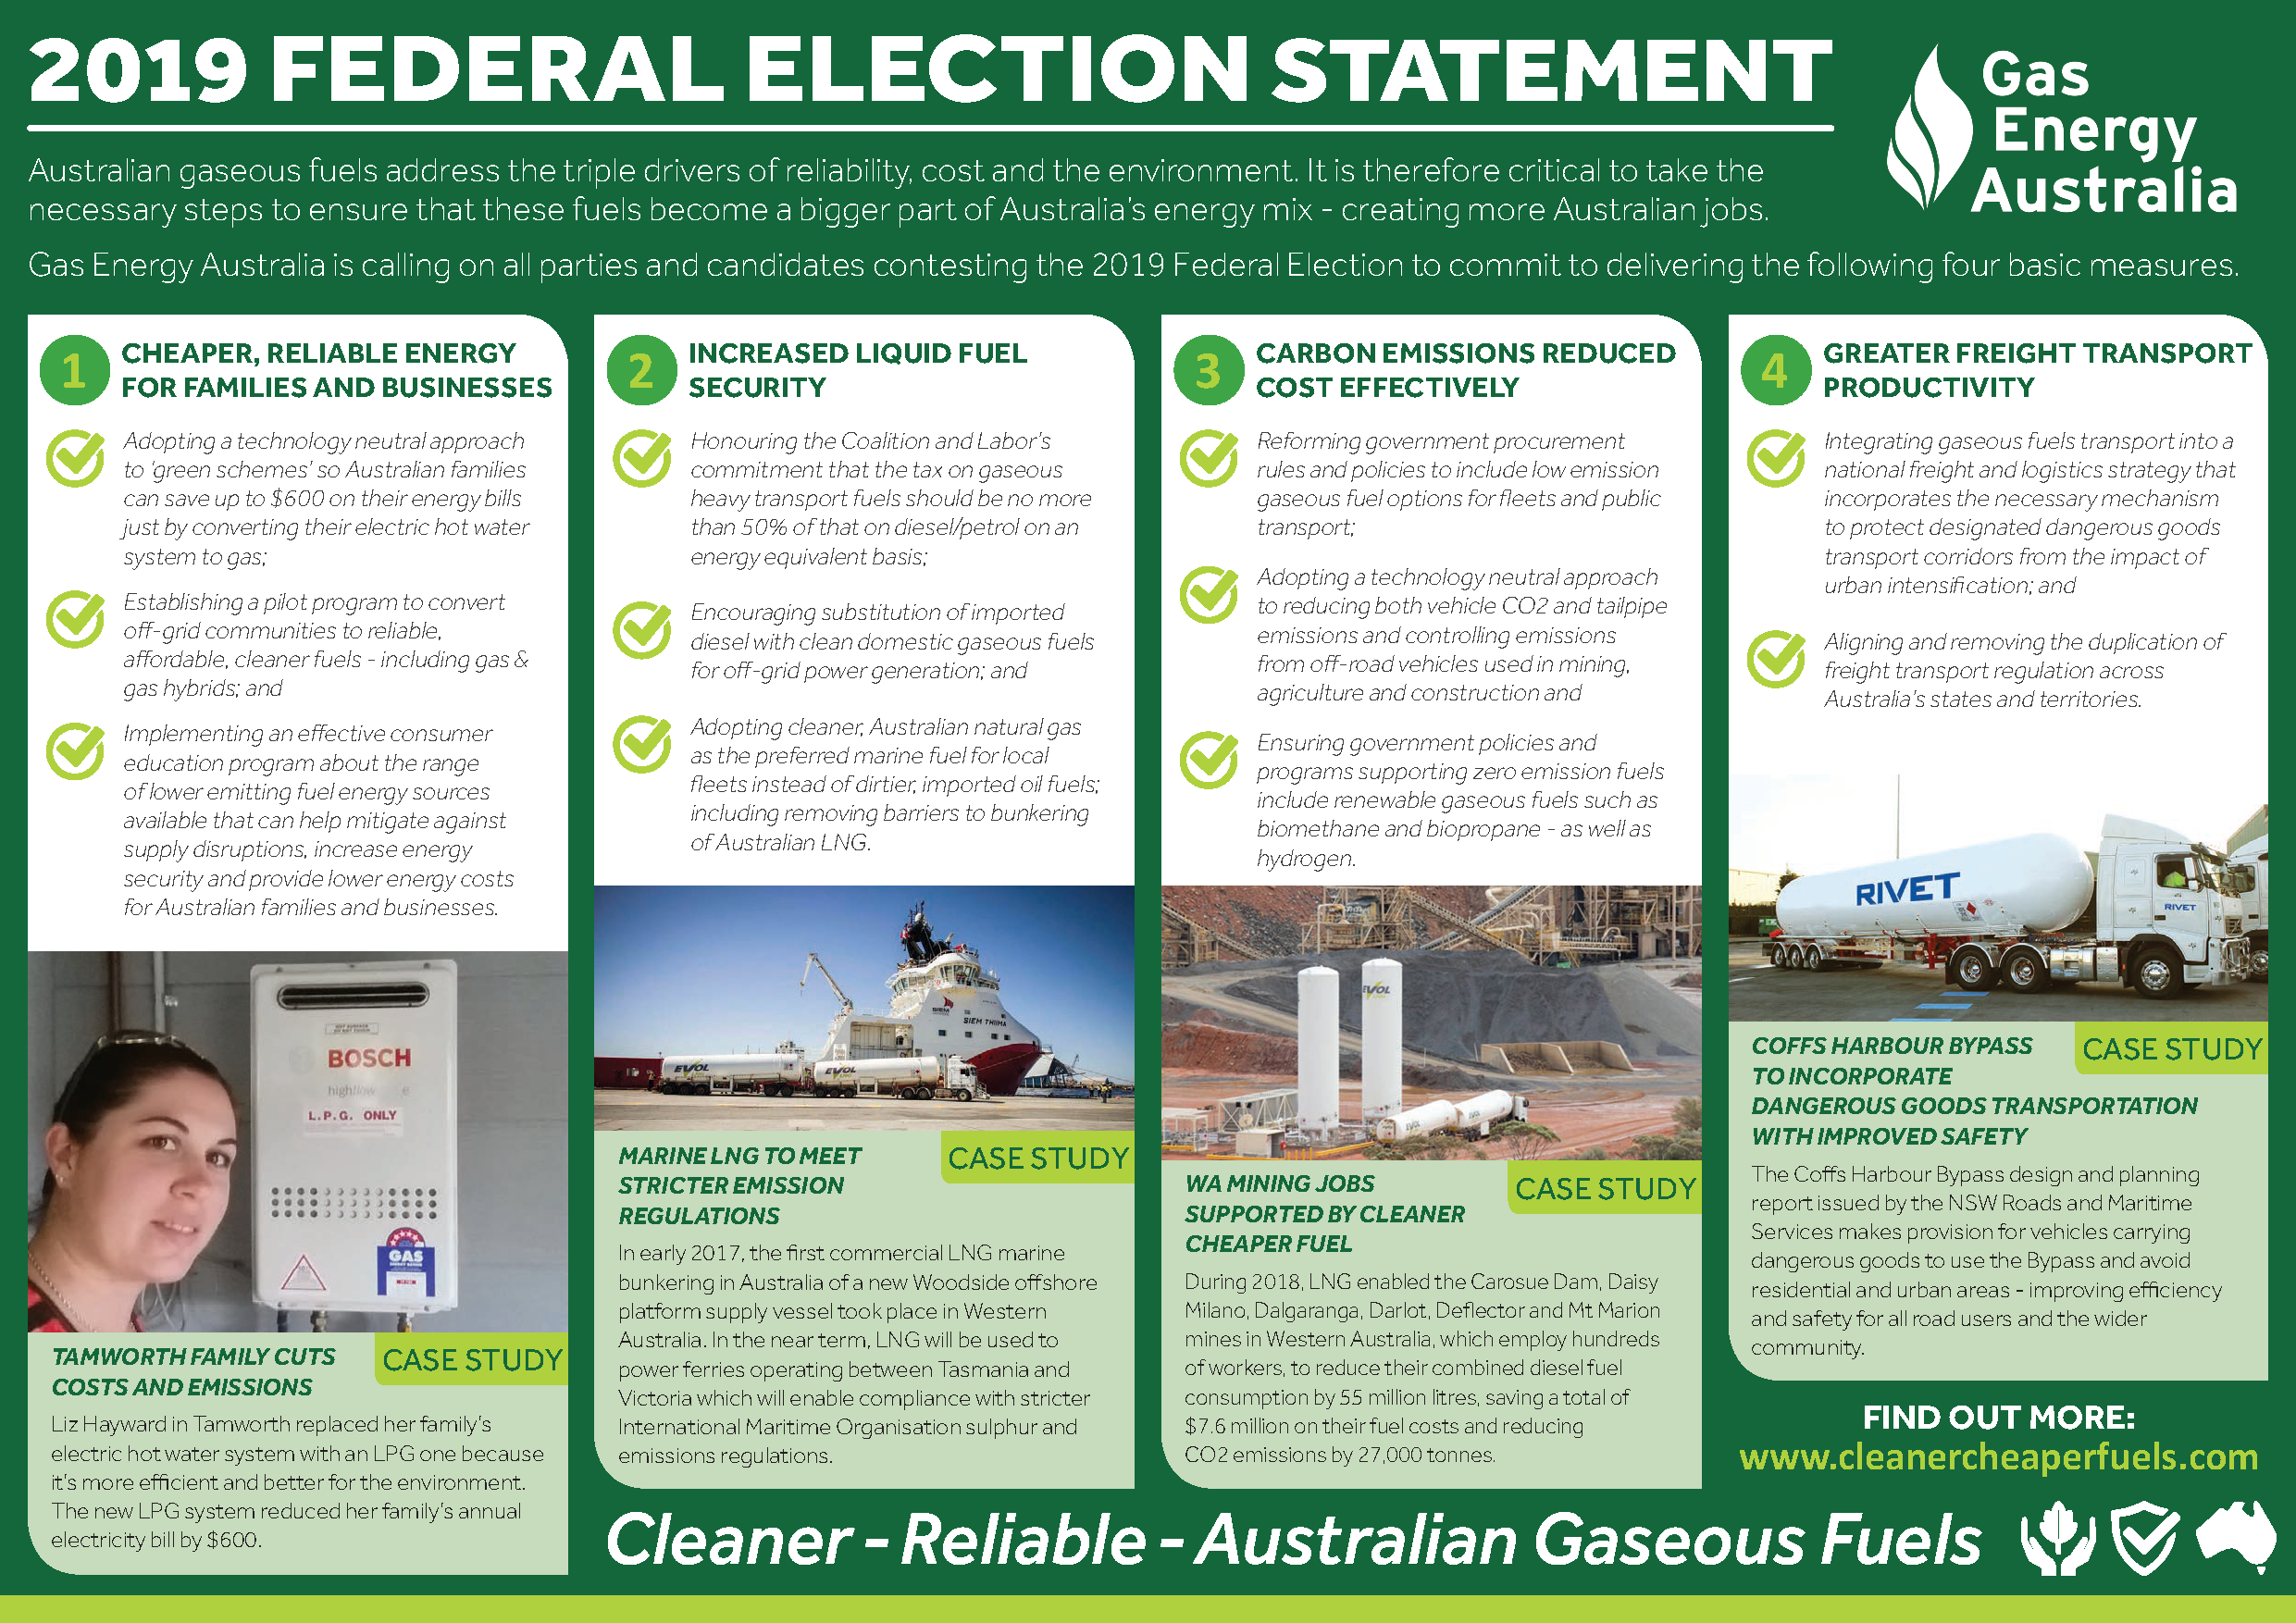 Gas Energy Australia (GEA) 2019 Federal Election Statement A3foldedA4 Internal Print FINAL_Page_2